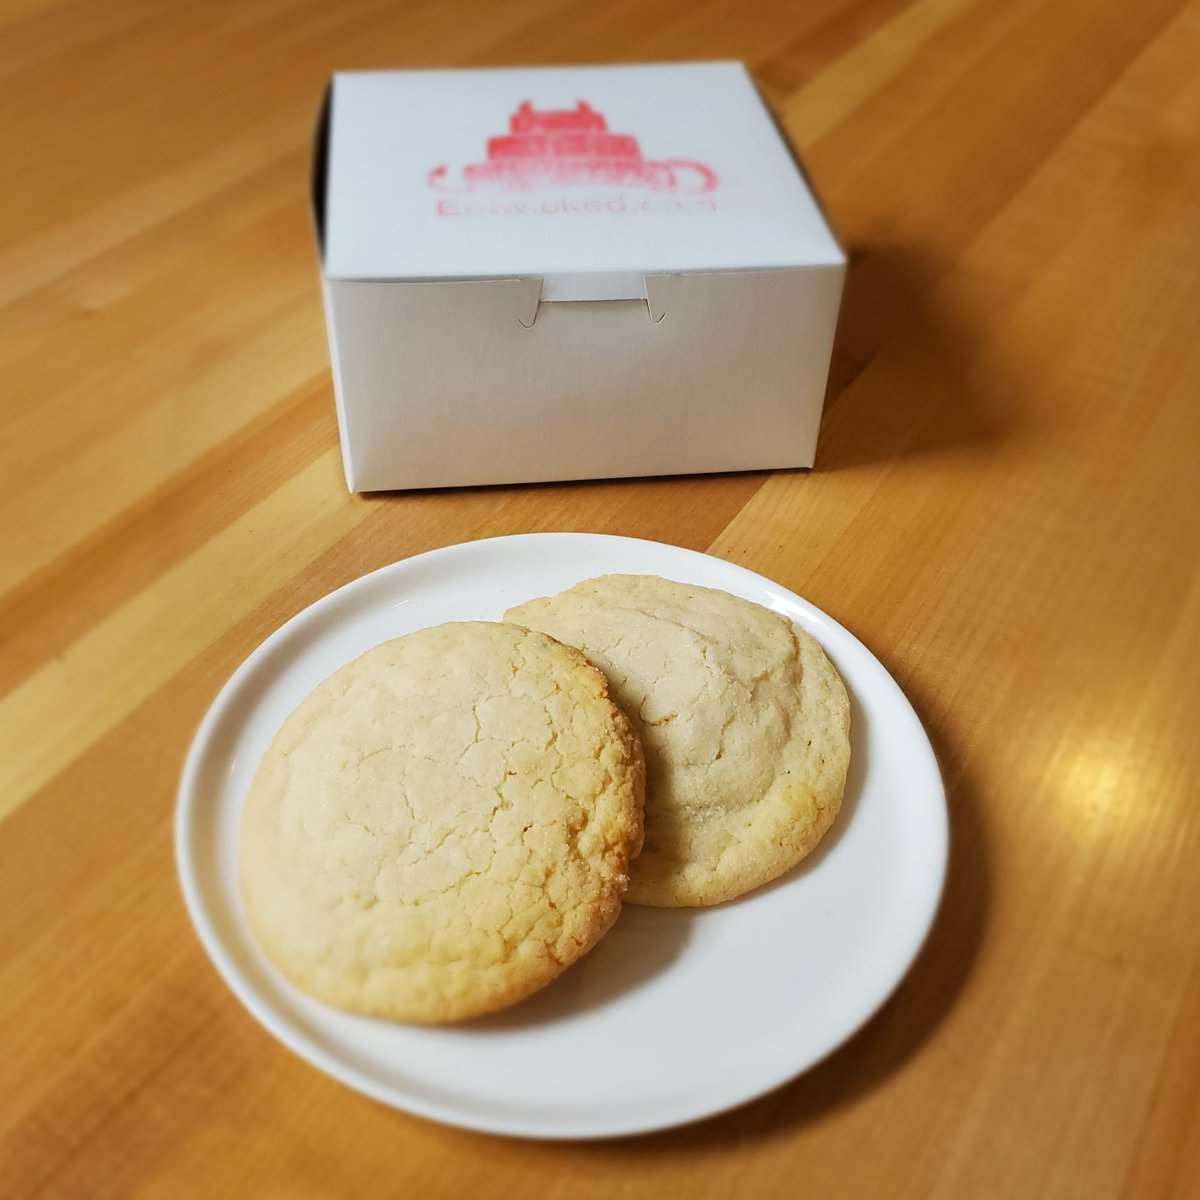 Have you tried our #lemonginger #sugarcookies yet? #eatwicked #PVD #RI #sindesserts #bakeryinripic.twitter.com/qB1rEL1nik